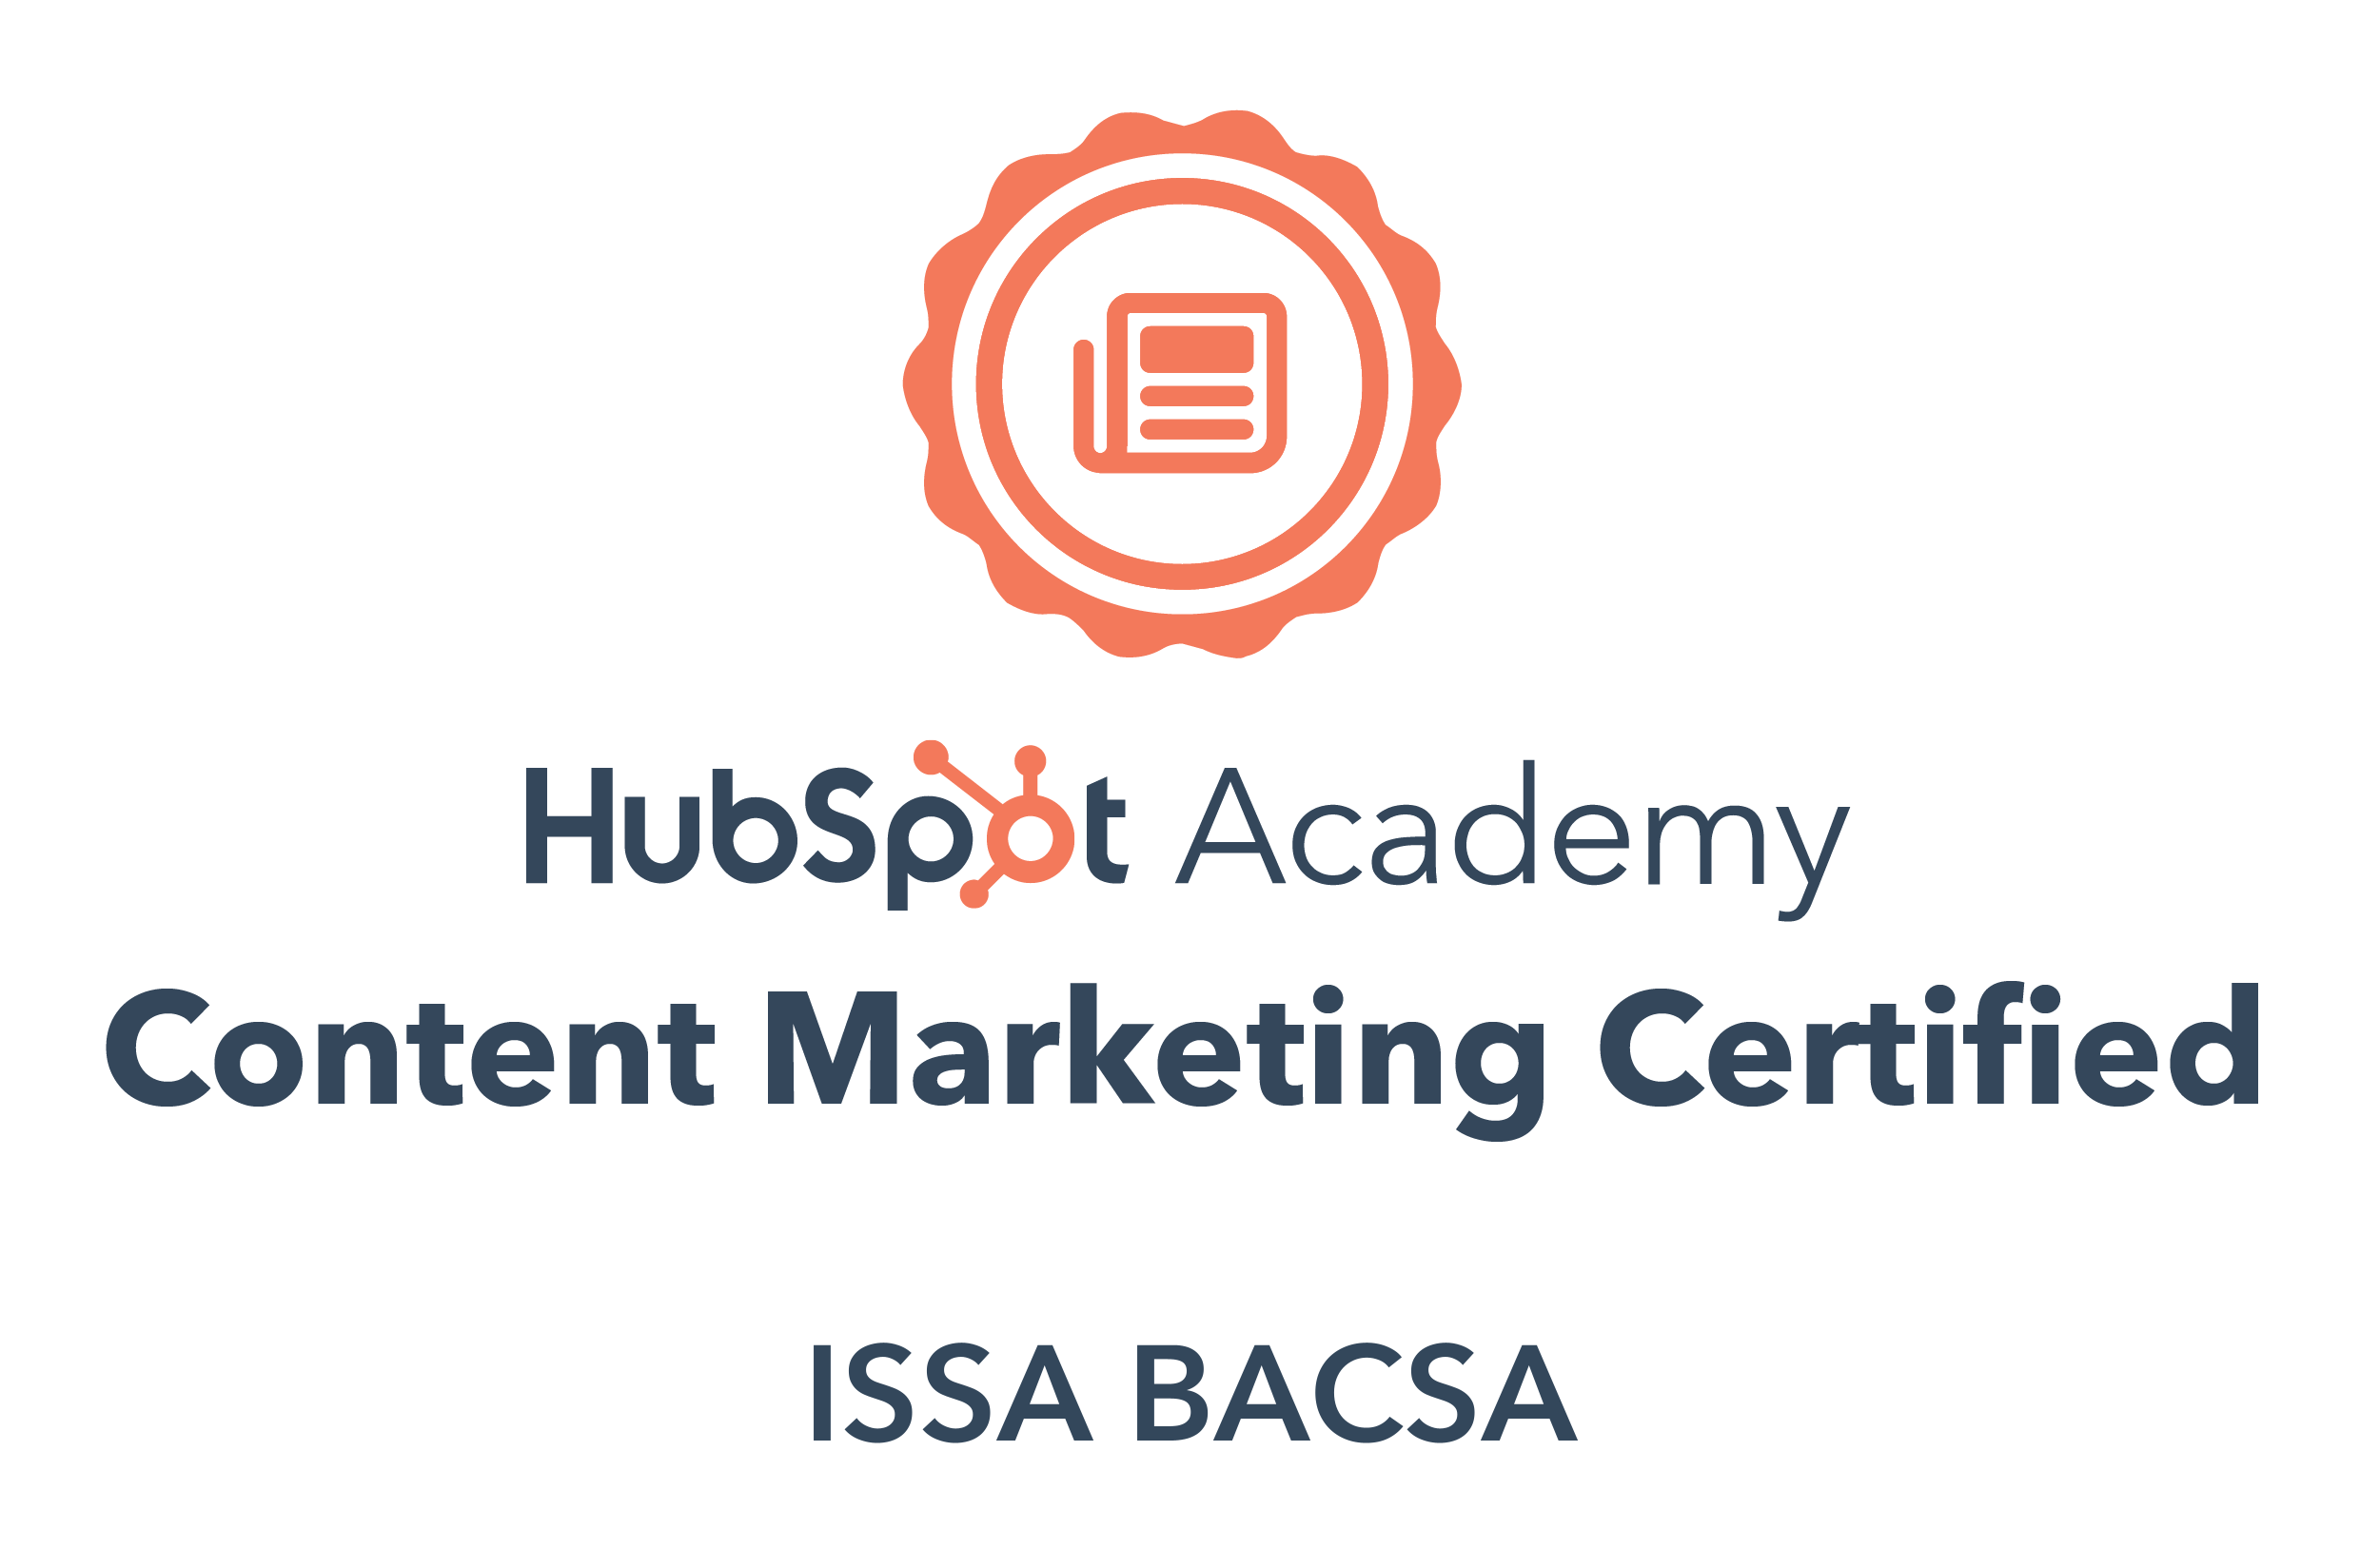 HubSpot Content Marketing Certification of Issa Bacsa